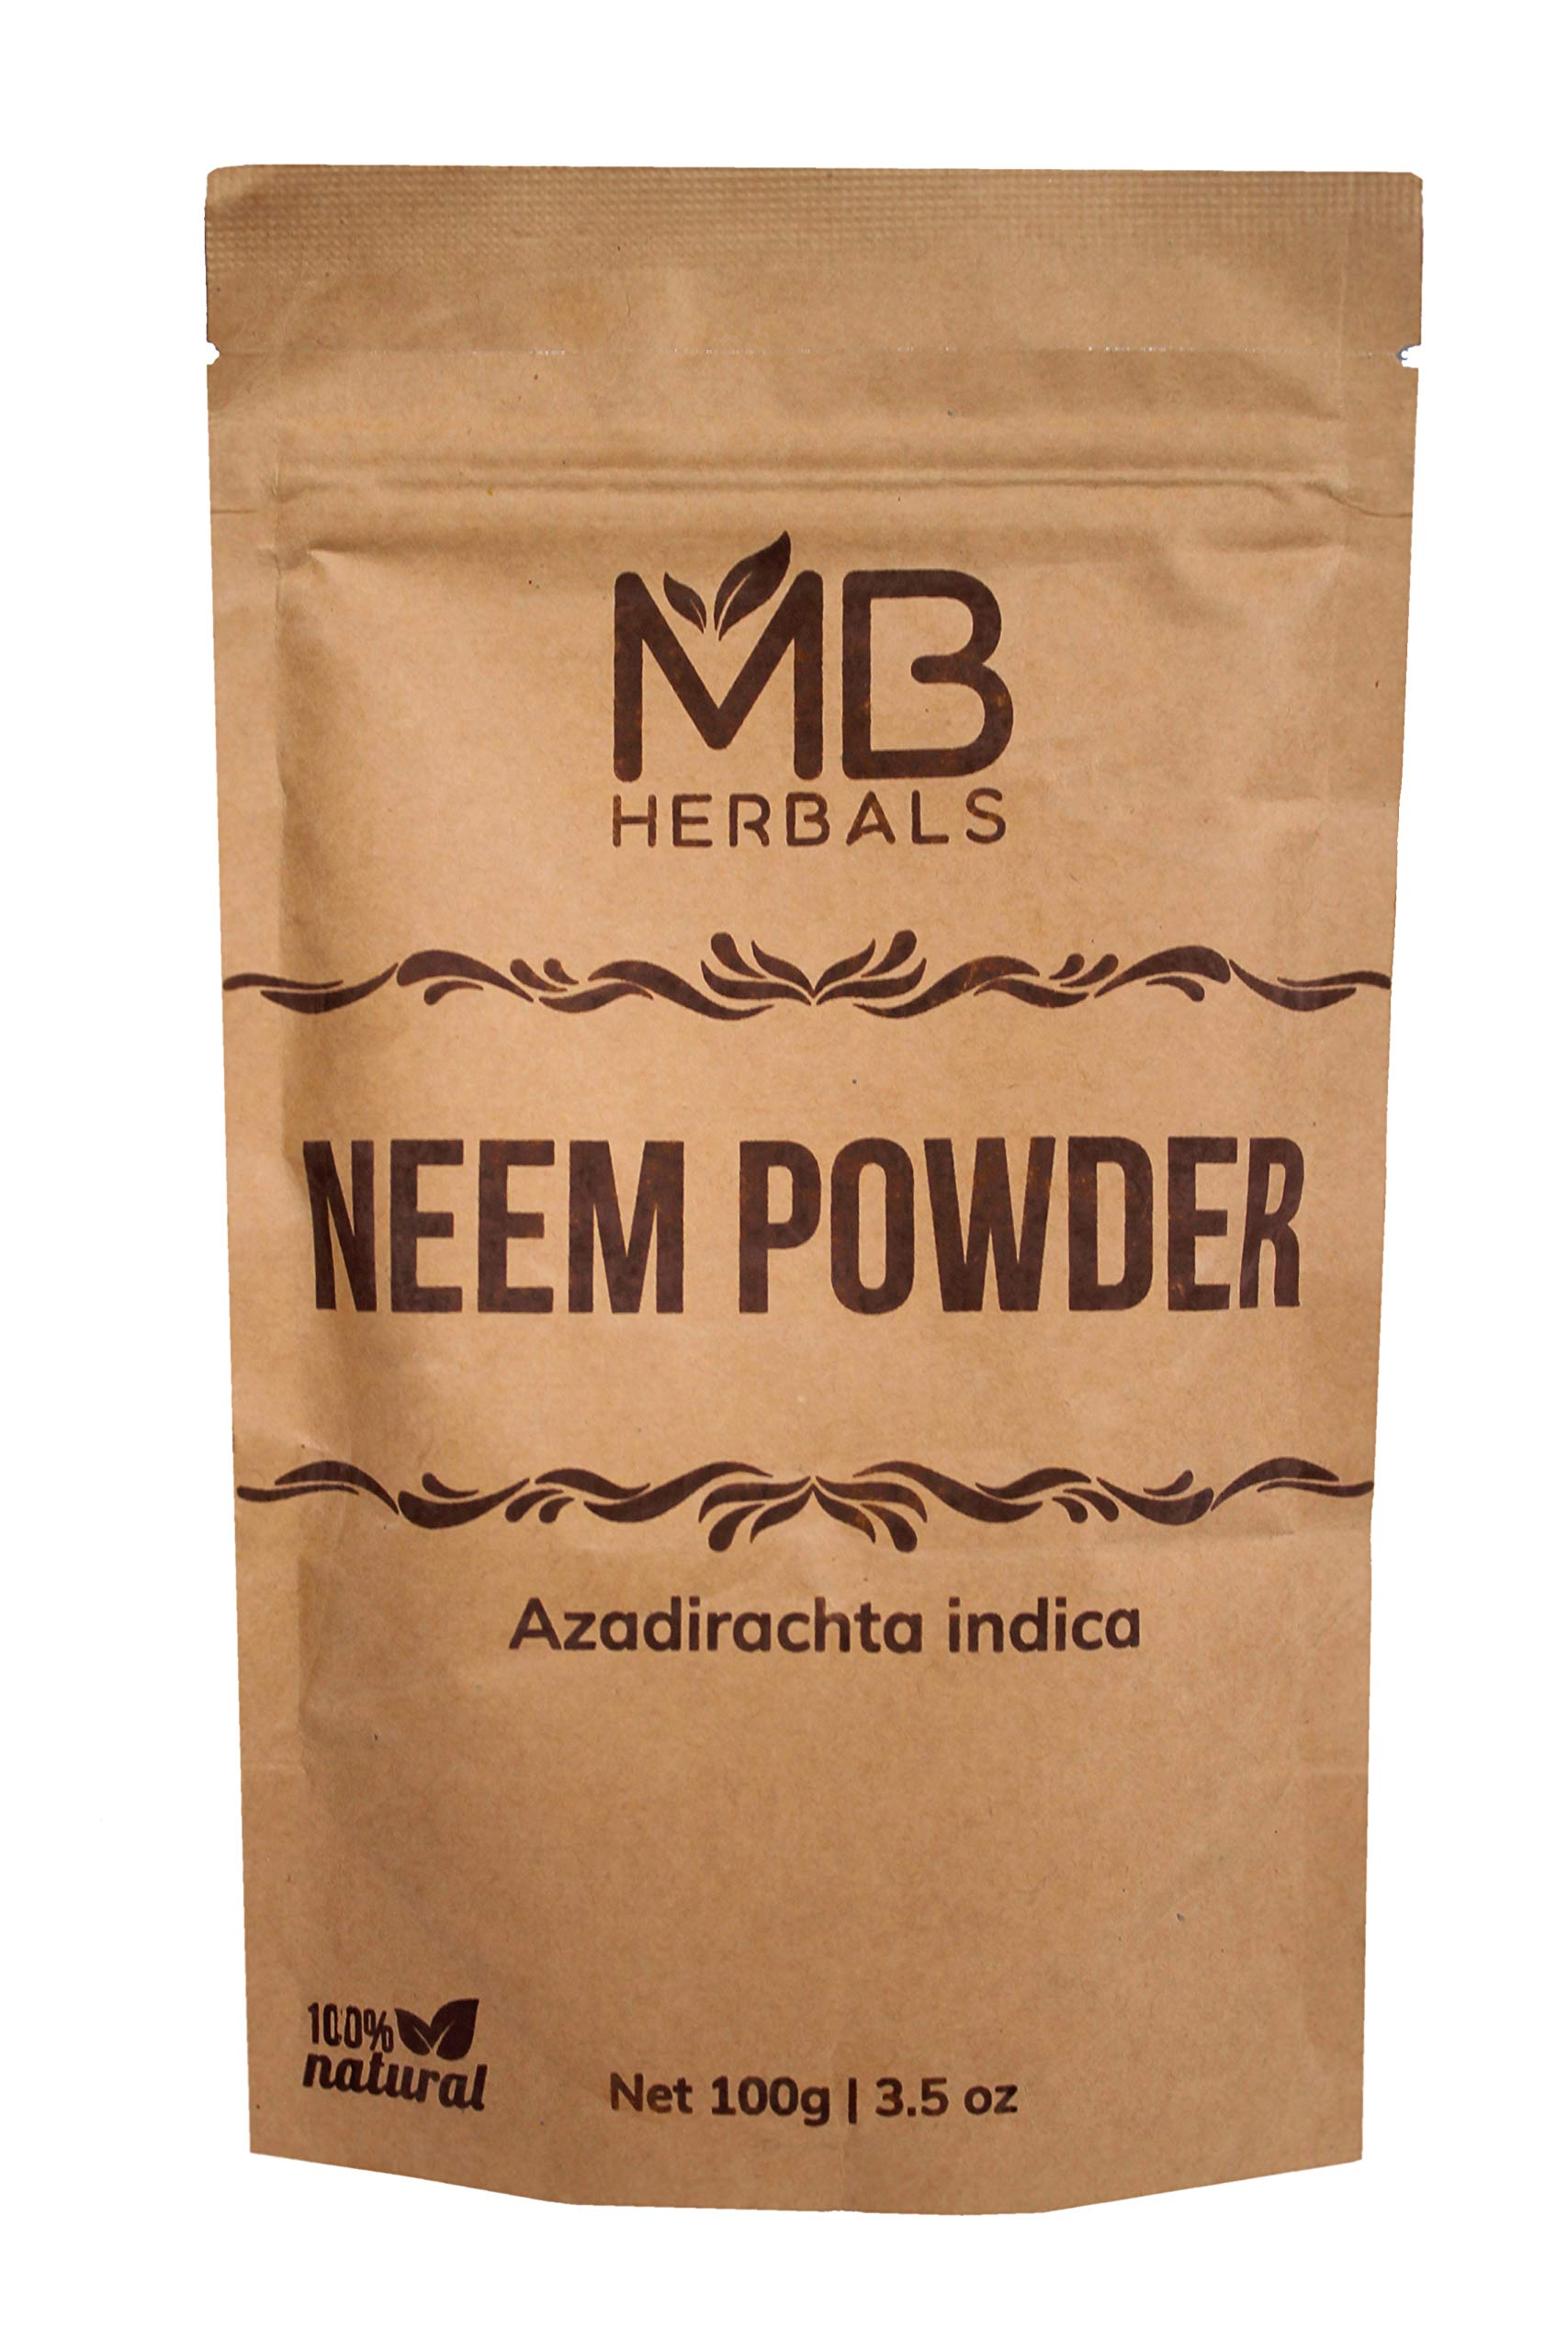 MB Herbals Pure Neem Leaf Powder 100g / 3.5 oz - 100% Pure - Wildcrafted - Very Bitter Neem Supplement for Skin Hair & Detox - Azadirachta Indica